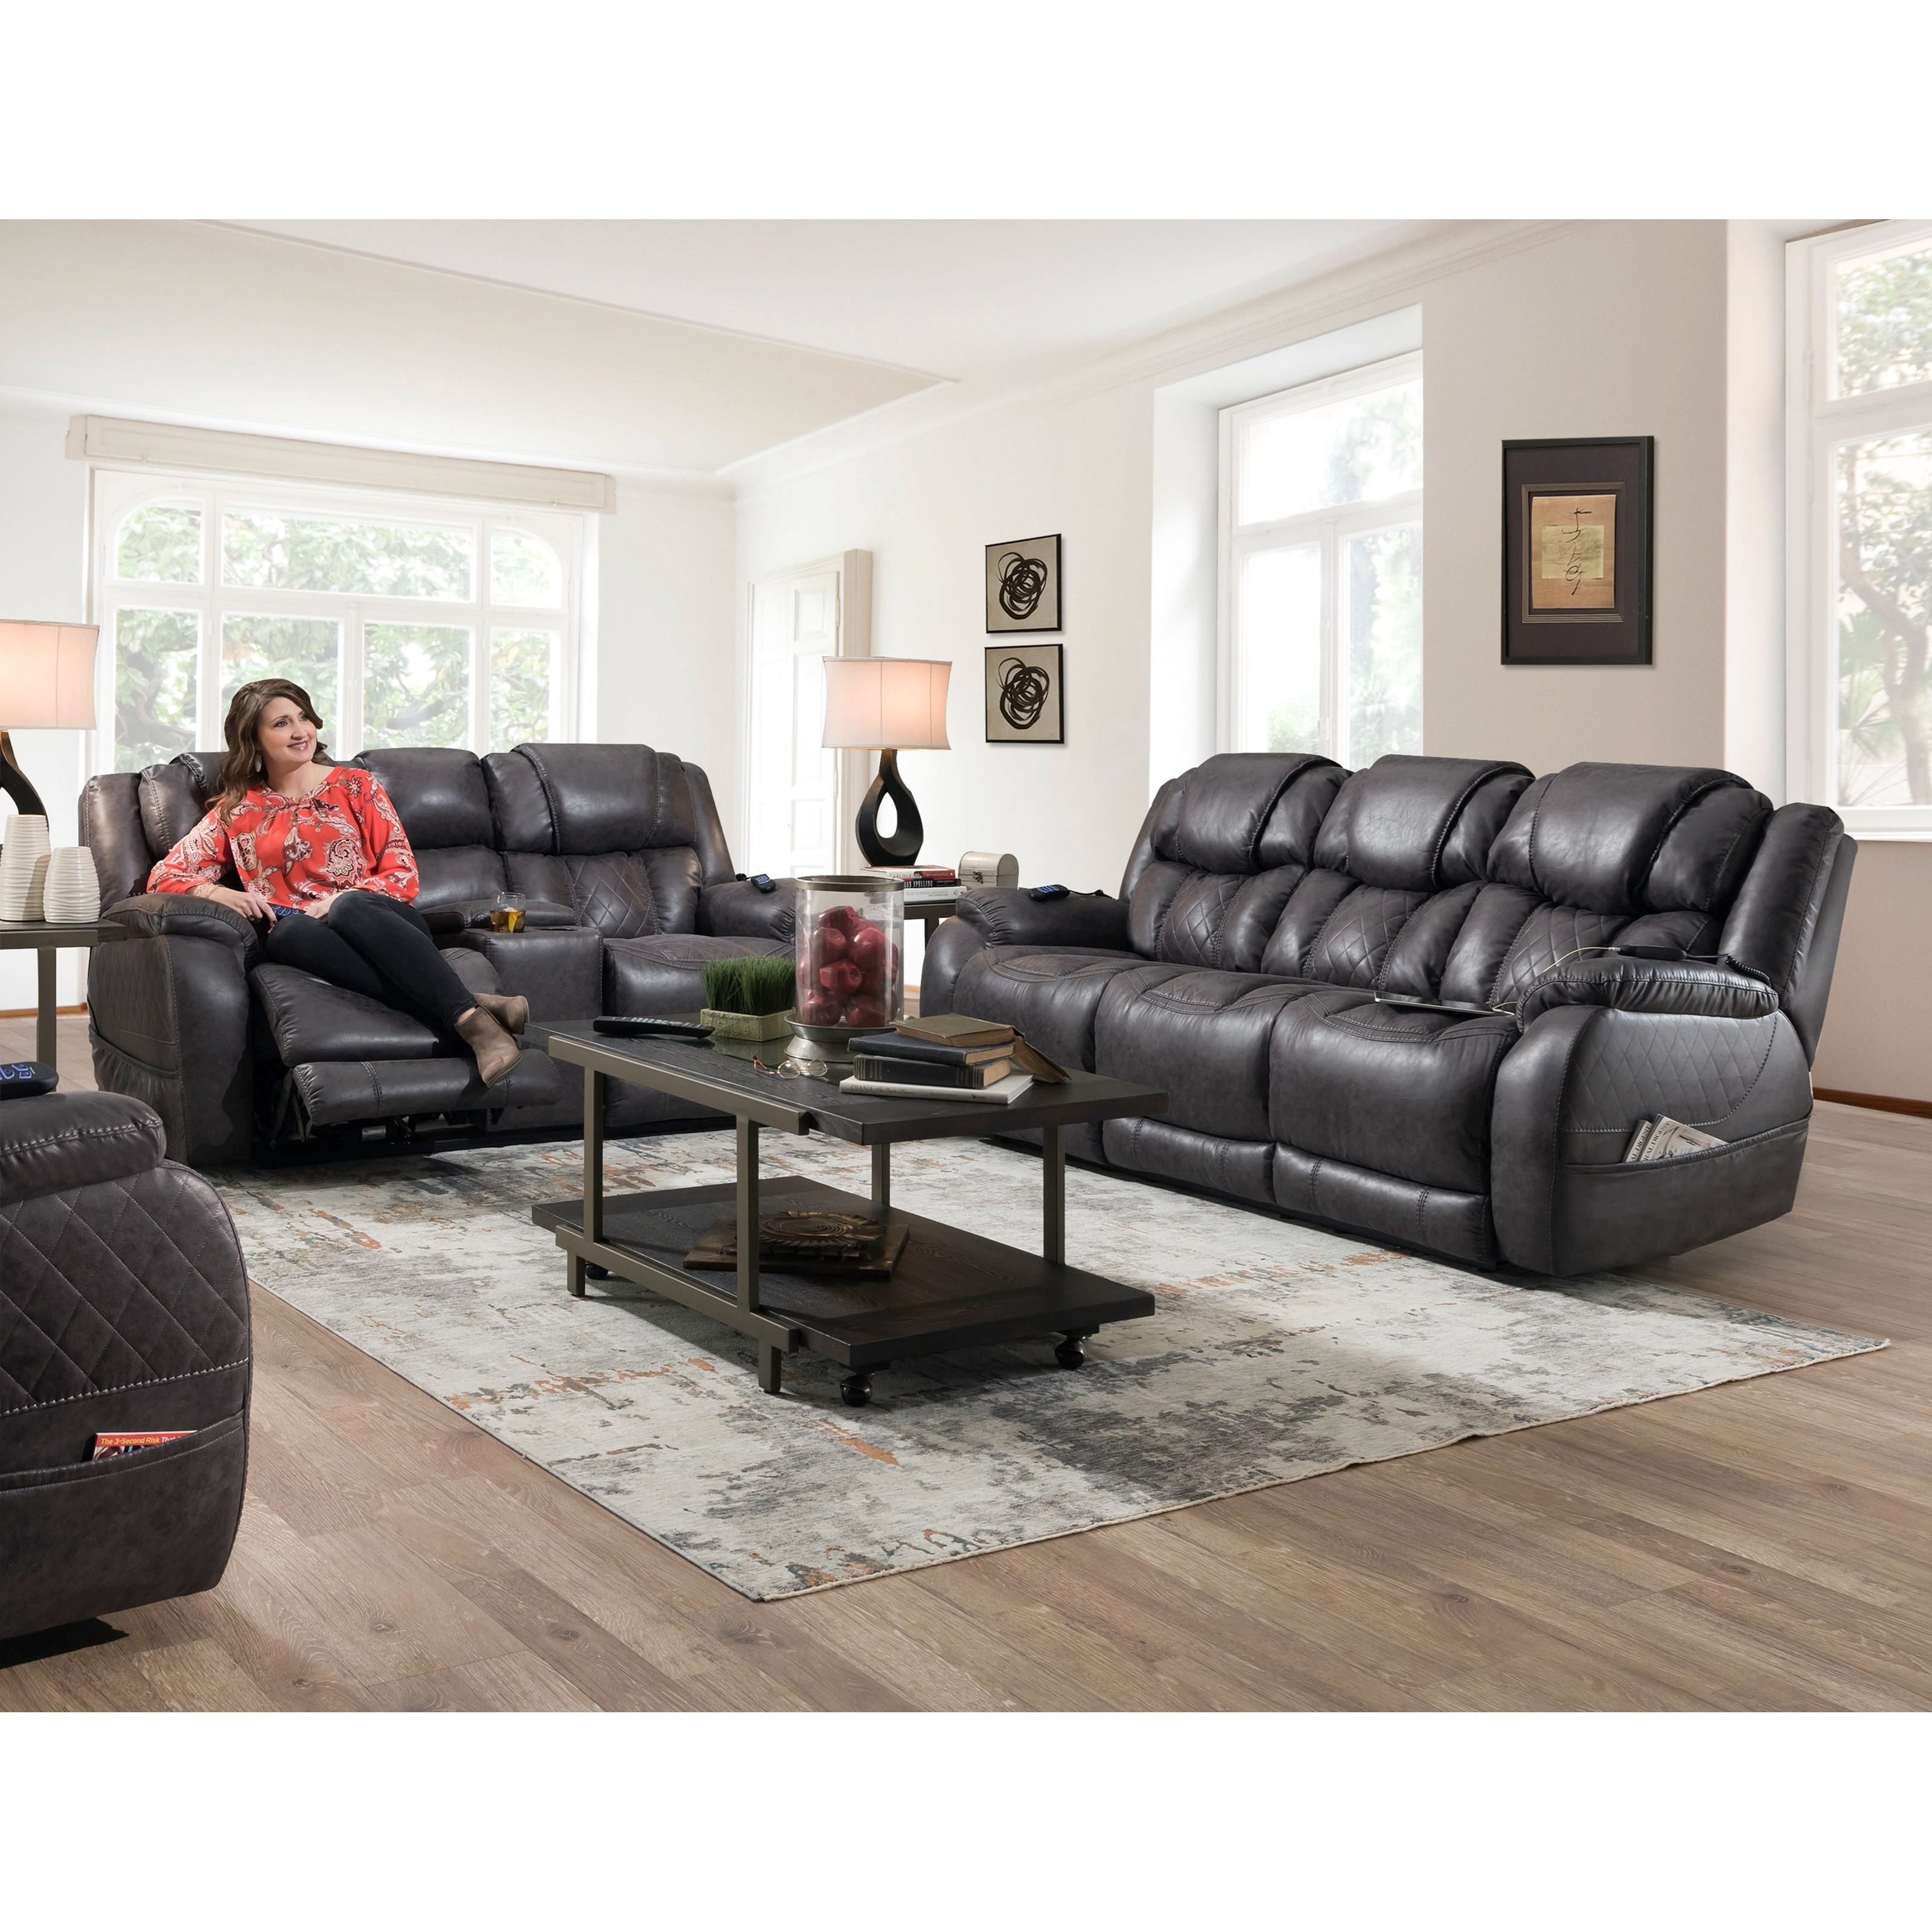 174 Reclining Living Room Group by HomeStretch at Suburban Furniture